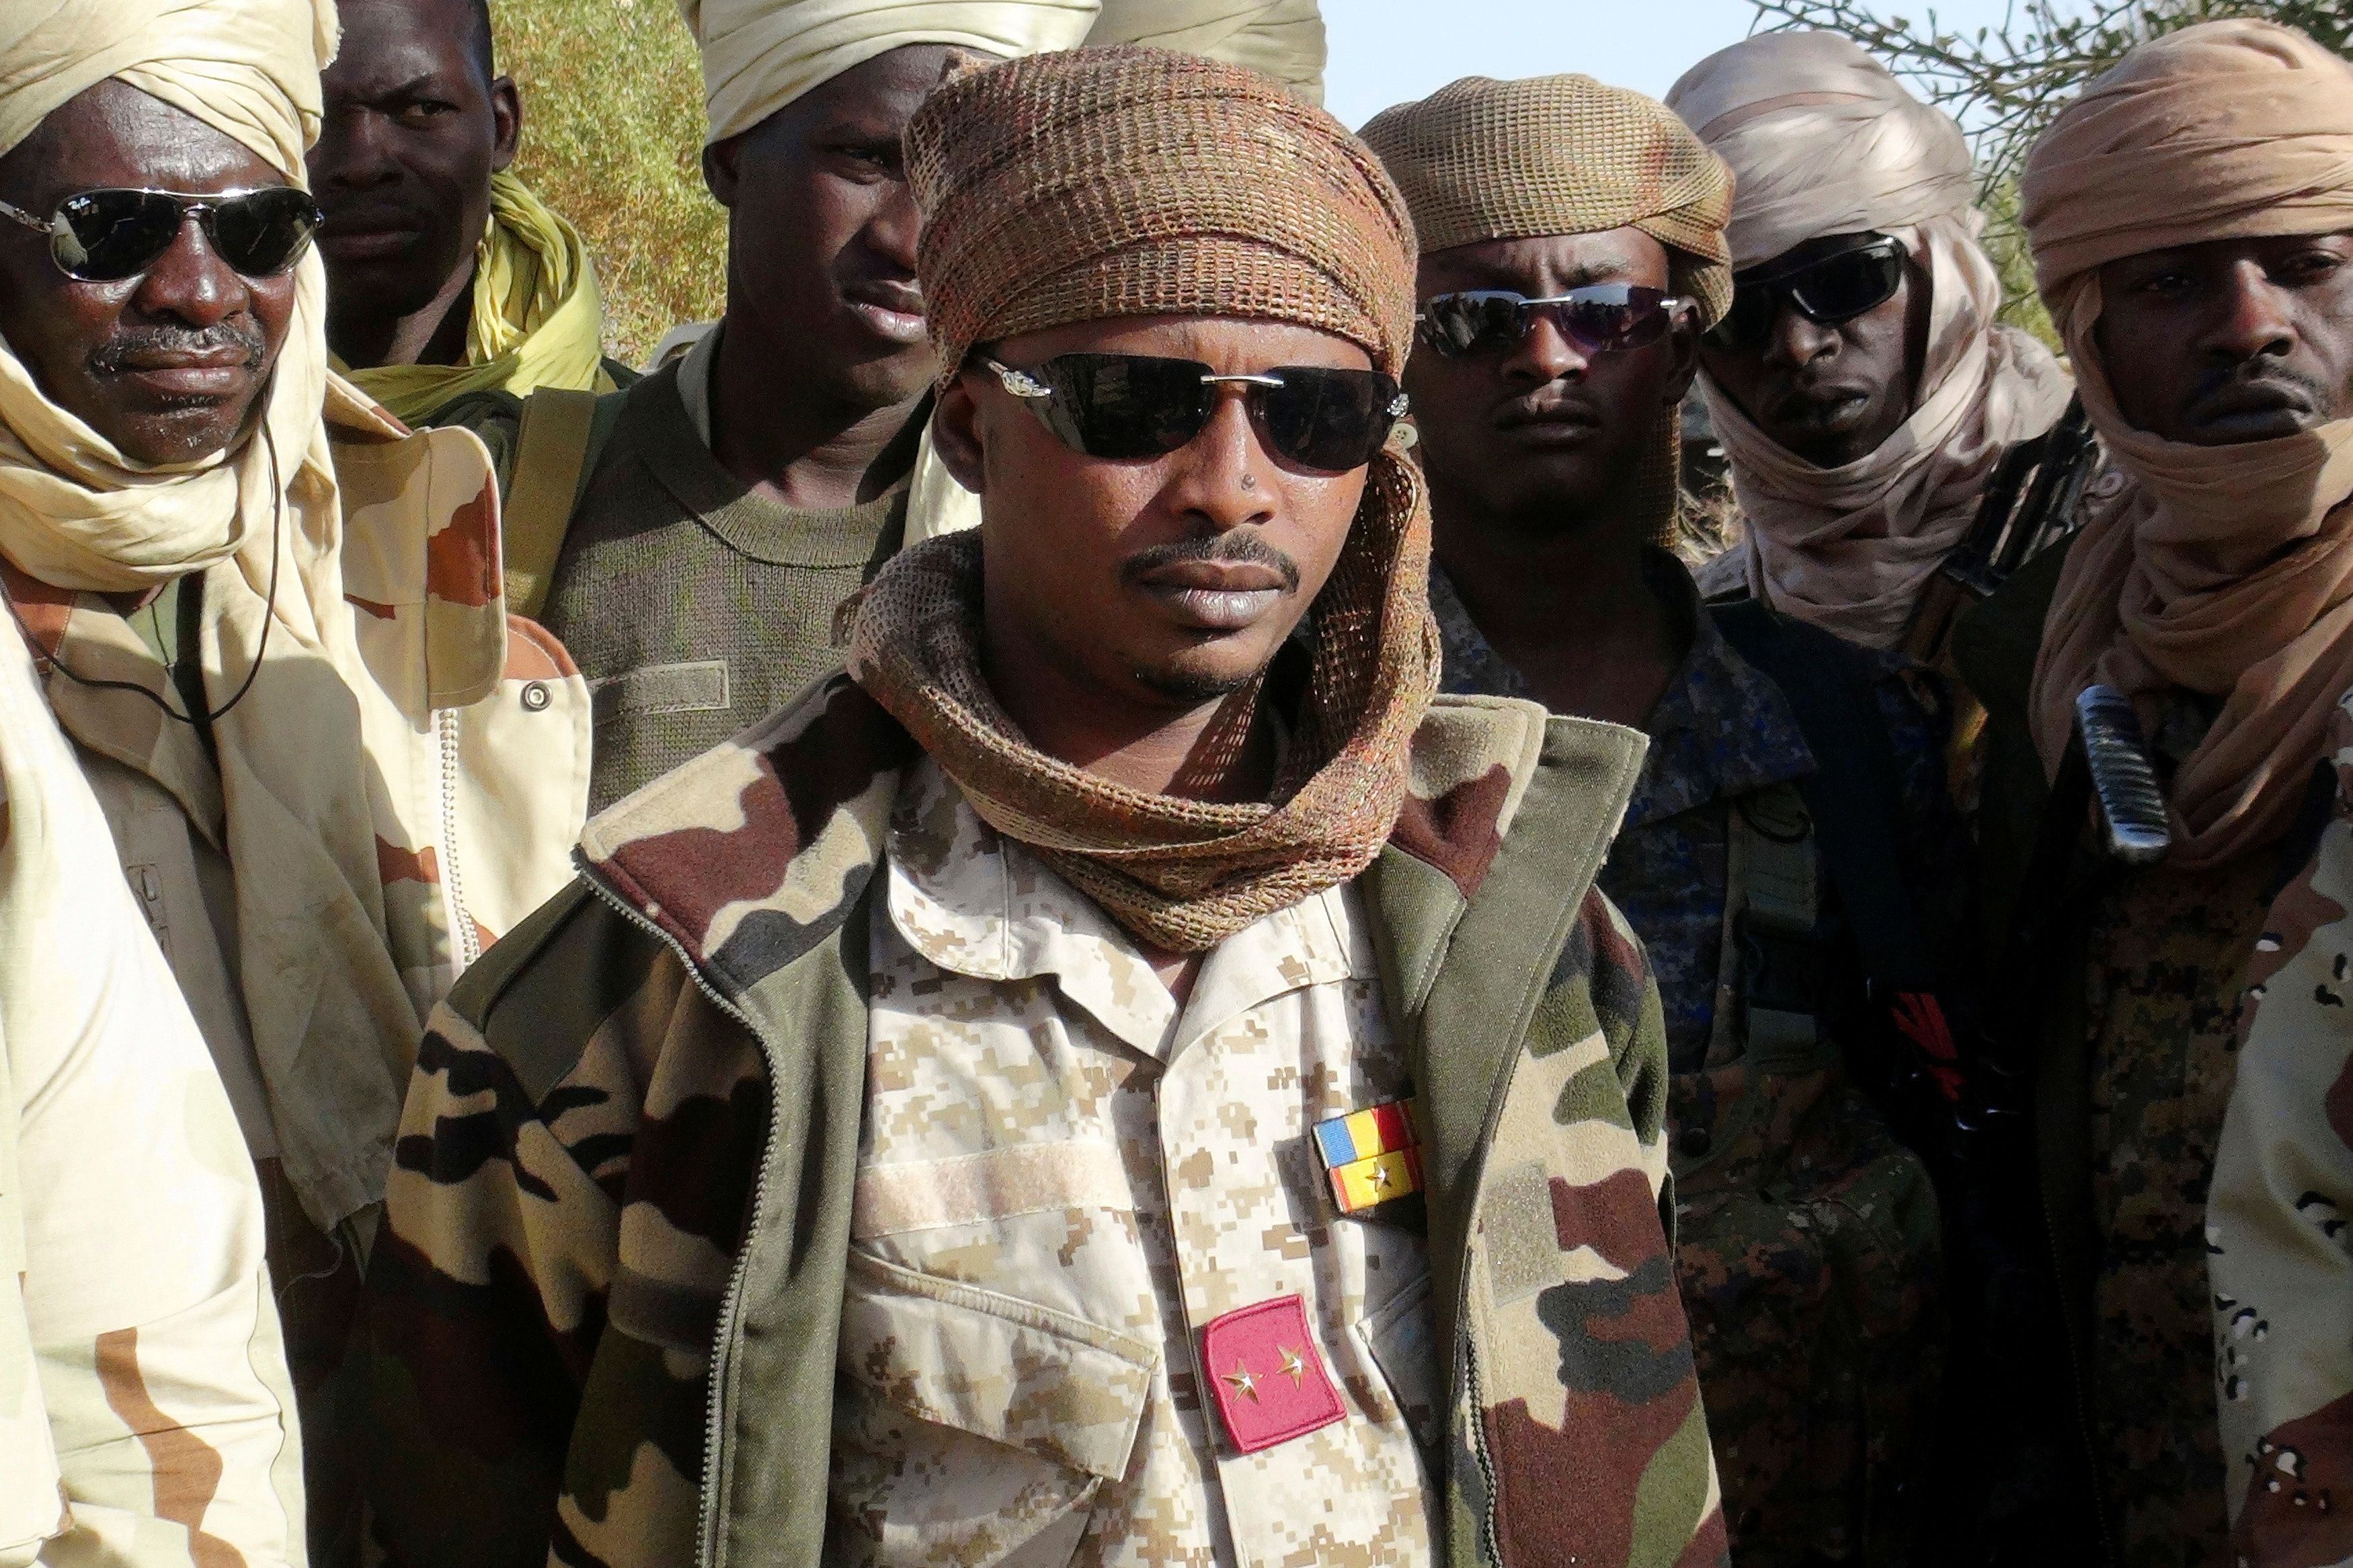 The son of Chad's late president Idriss Deby, Mahamat Idriss Deby Itno (also known as Mahamat Kaka) and Chadian army officers gather in the northeastern town of Kidal, Mali, February 7, 2013. REUTERS/Cheick Diouara/File Photo